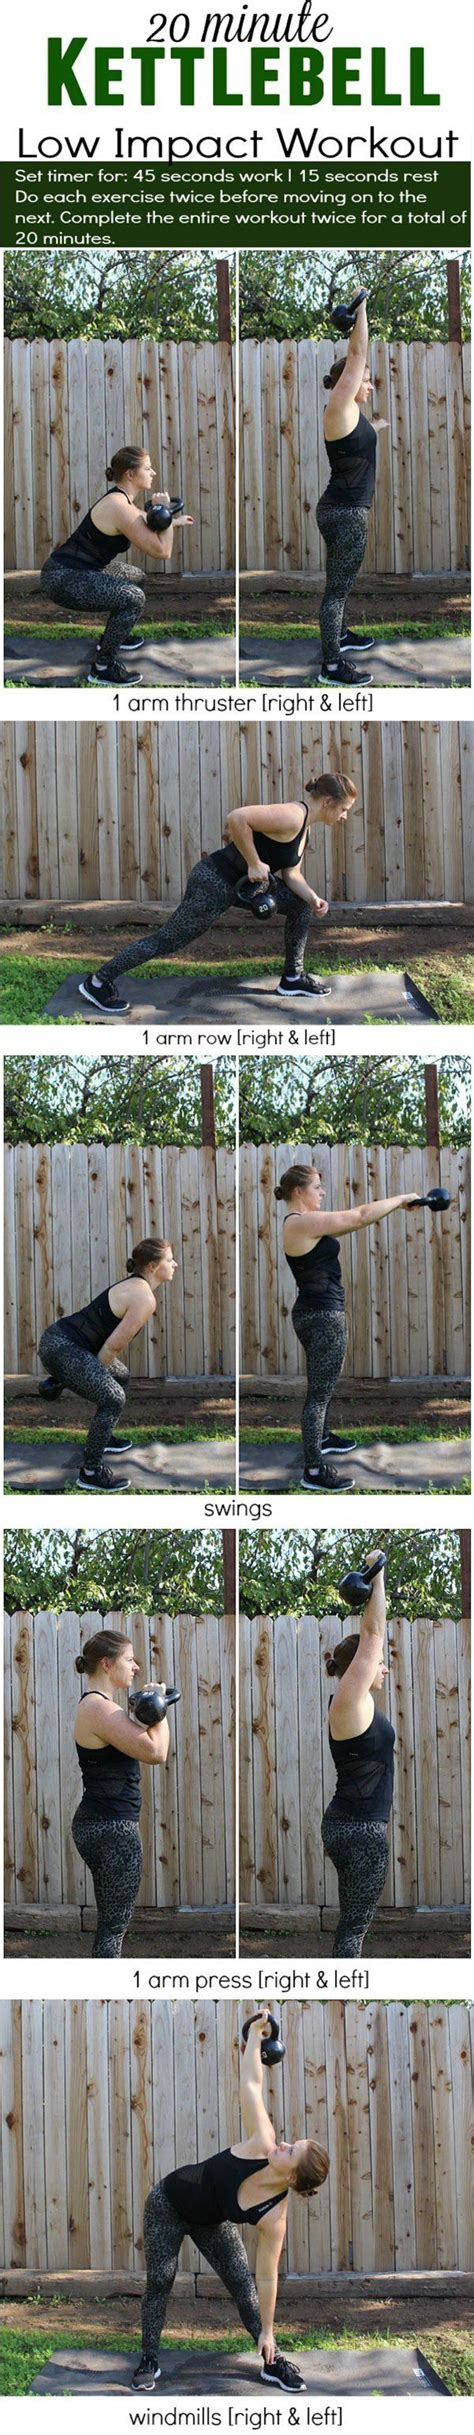 impact workout low kettlebell katalysthealthblog